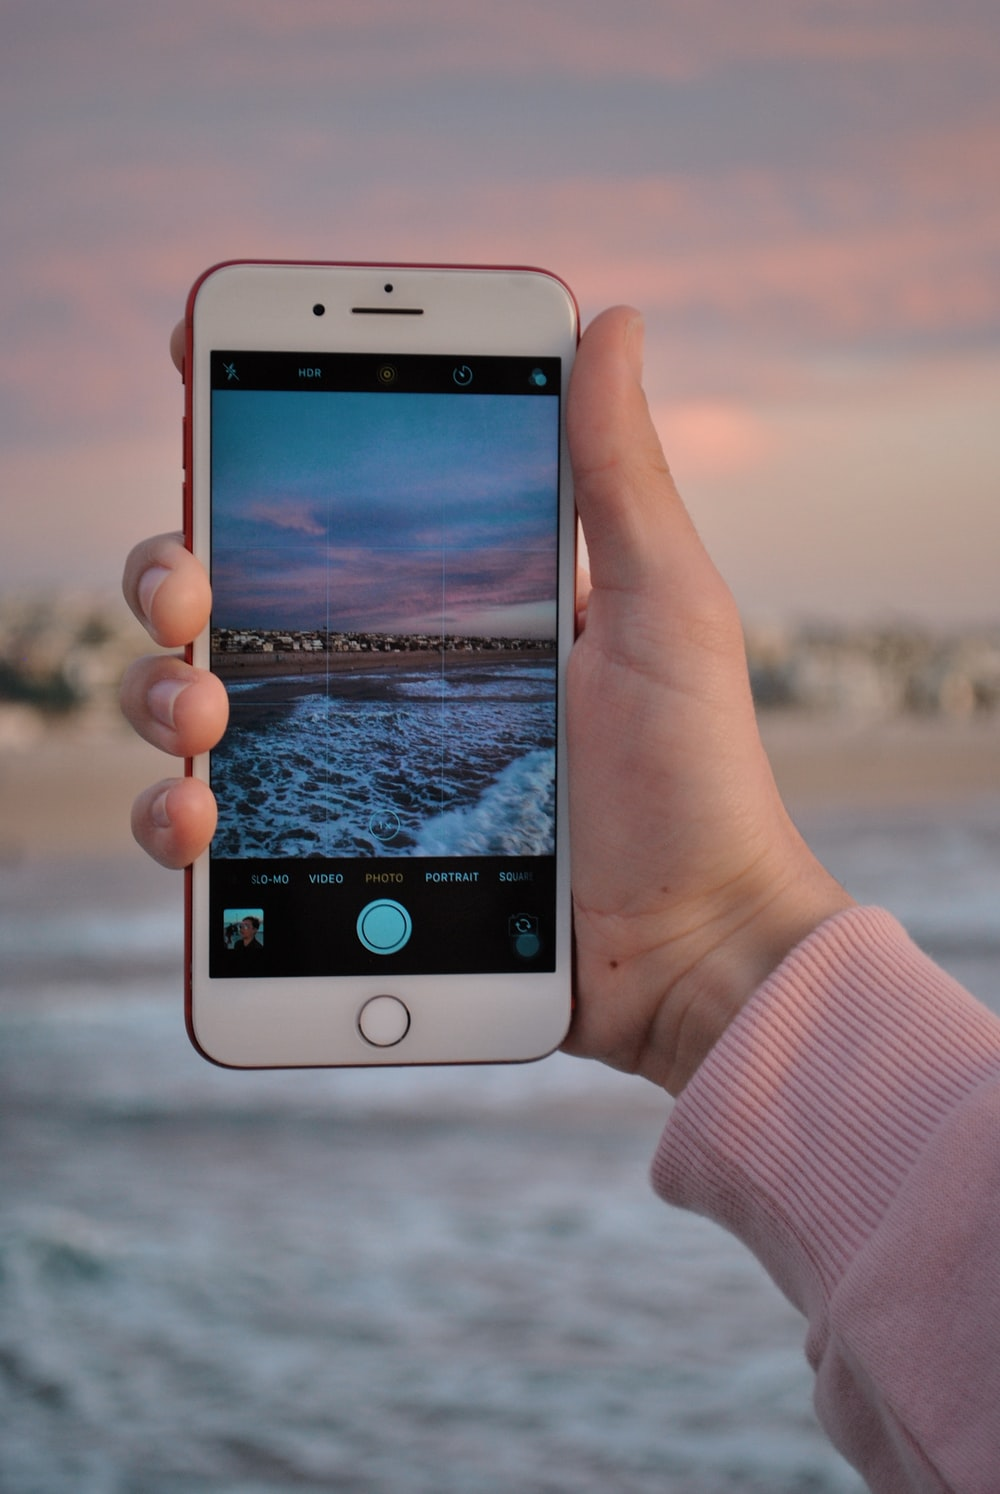 Person Using Product Red Iphone 7 With Seashore Wallpaper Photo Free Cell Phone Image On Unsplash